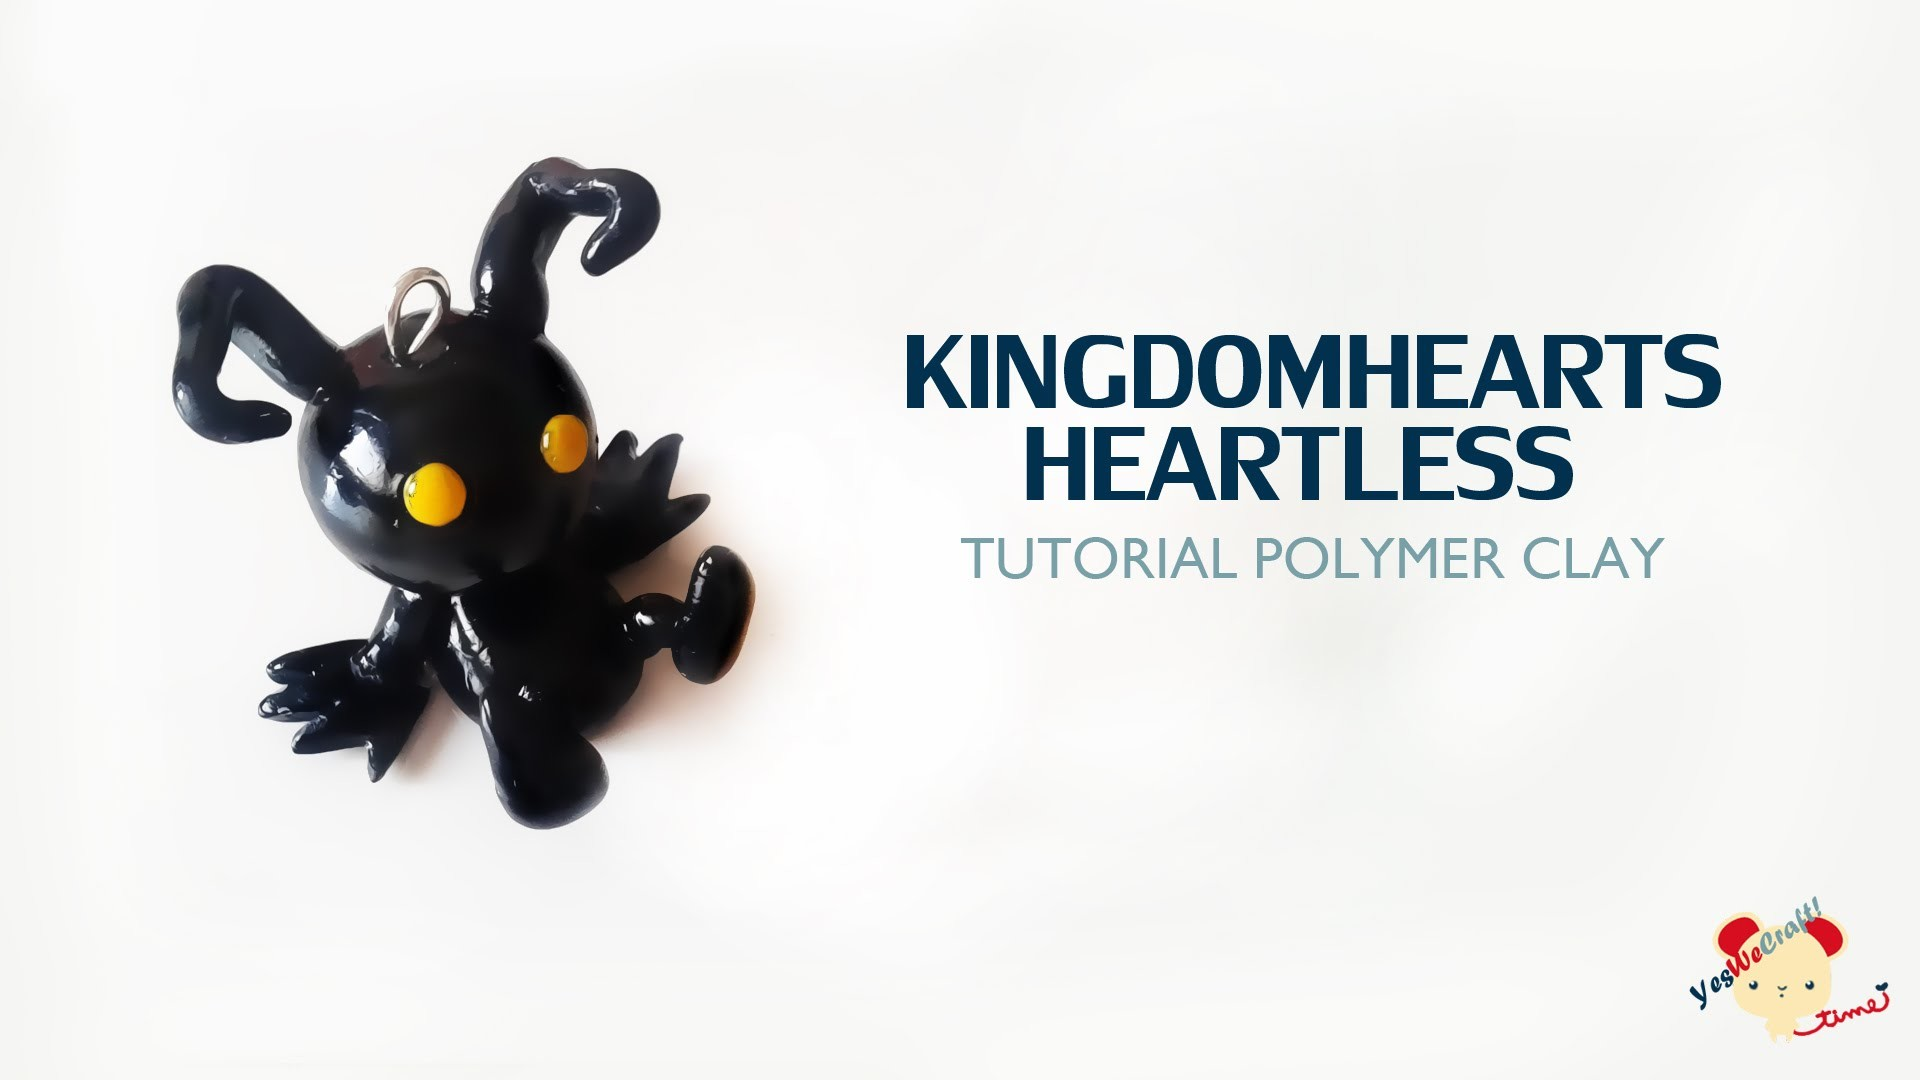 Kingdom Hearts Heartless Polymer Clay Tutorial. Sincorazón Kingdom Hearts de Arcilla Polimérica